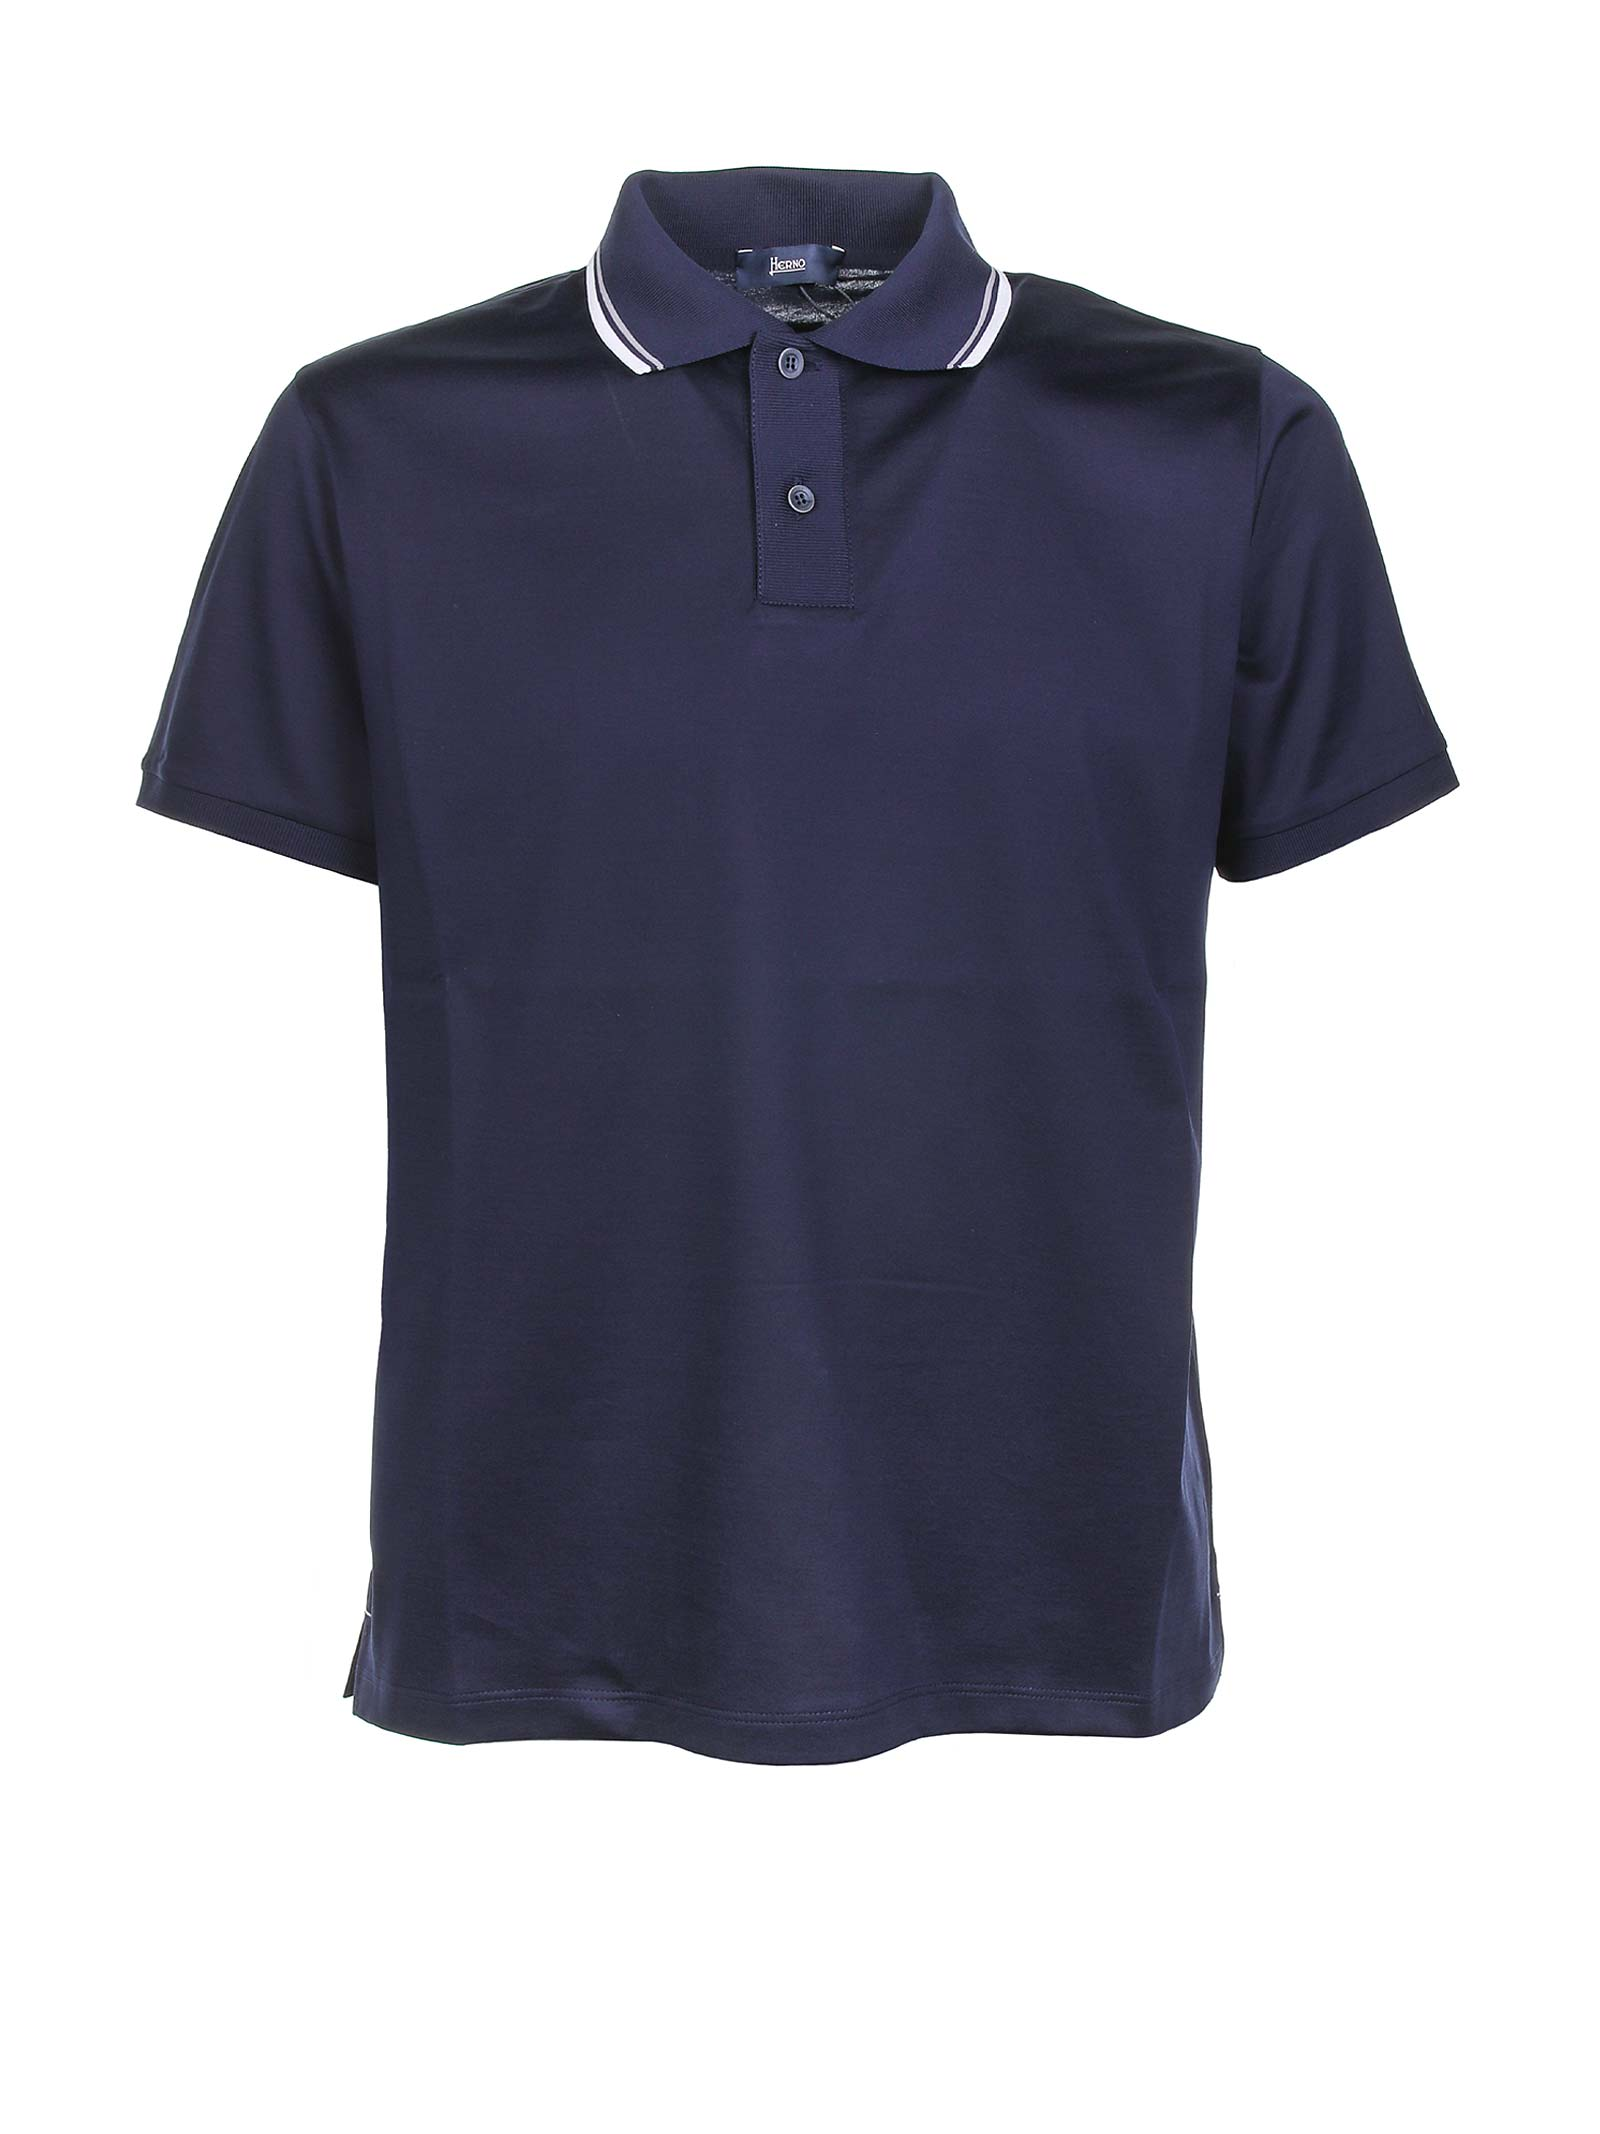 Stripe Trimmed Collar Polo Shirt